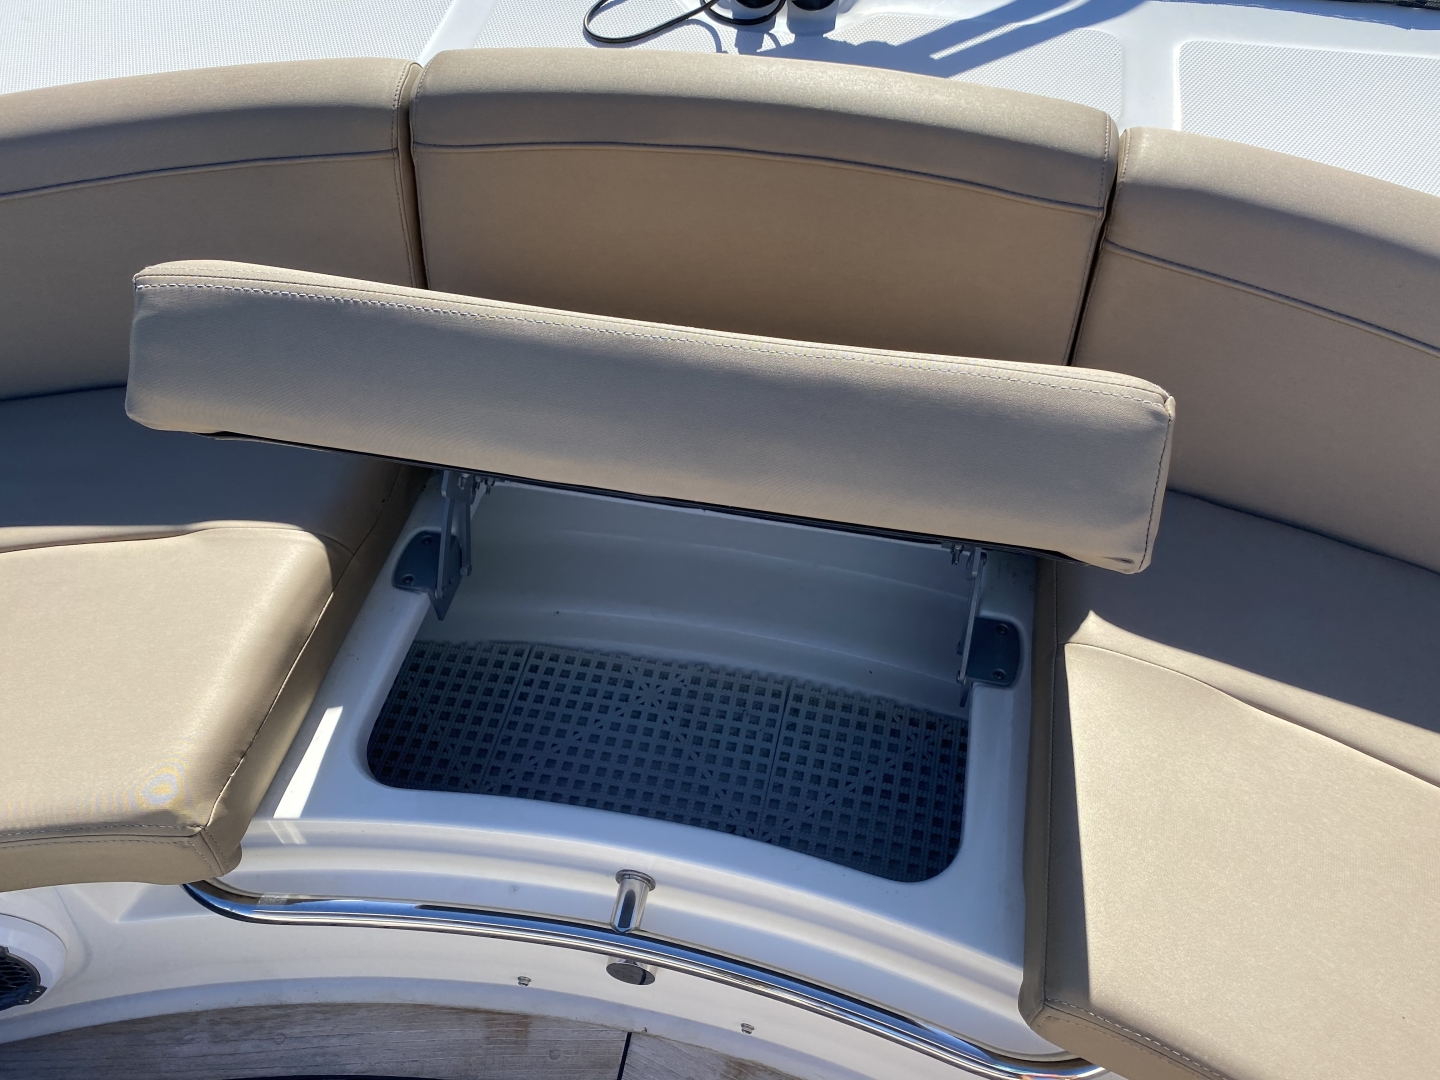 Sea Ray-L650 Express 2016-Cozy Fort Lauderdale-Florida-United States-2016 Sea Ray L650 Bow-1367690 | Thumbnail